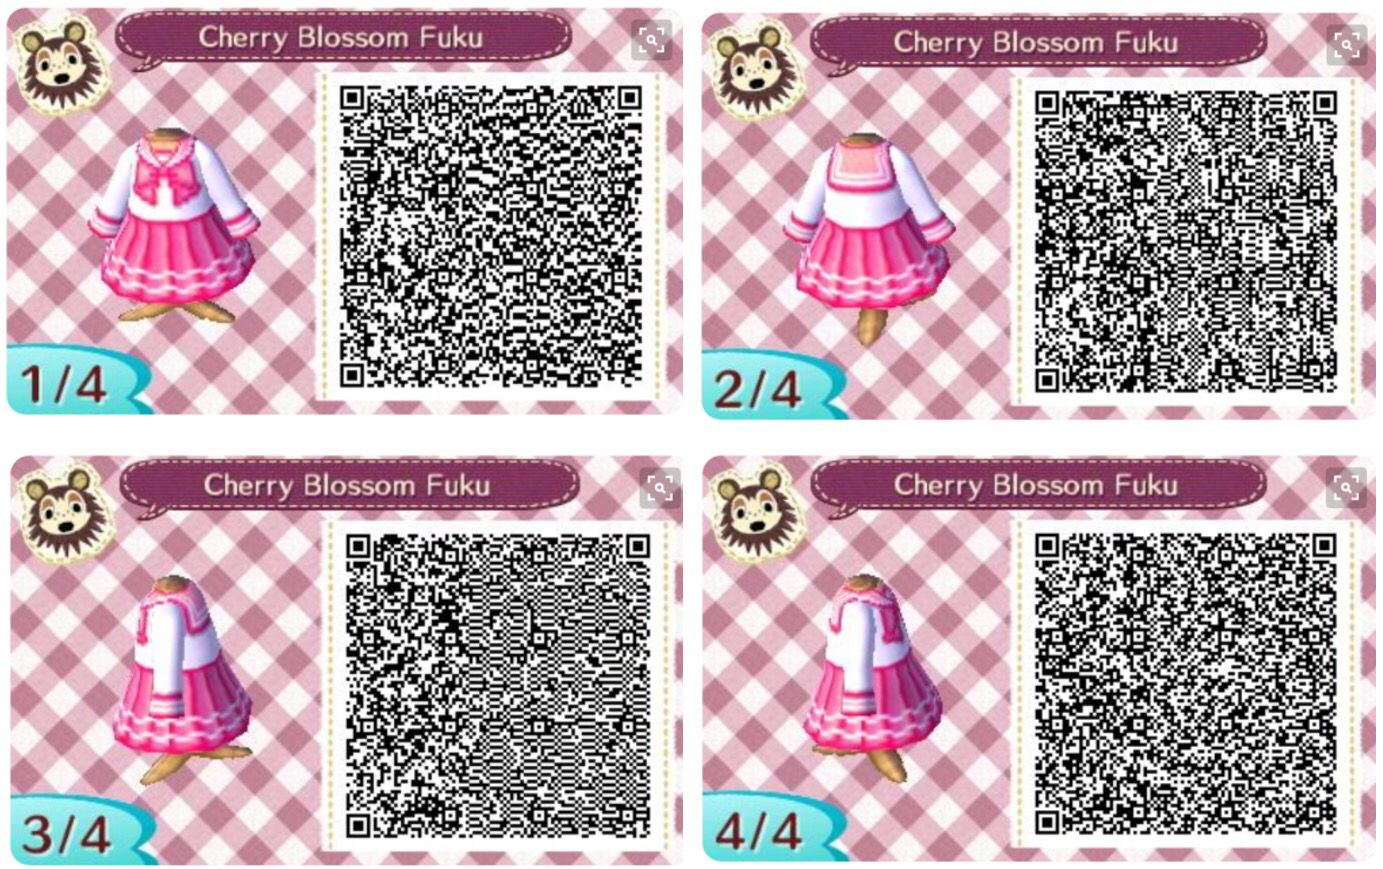 Animal crossing new leaf qr code dress cherry blossom for Boden qr codes animal crossing new leaf